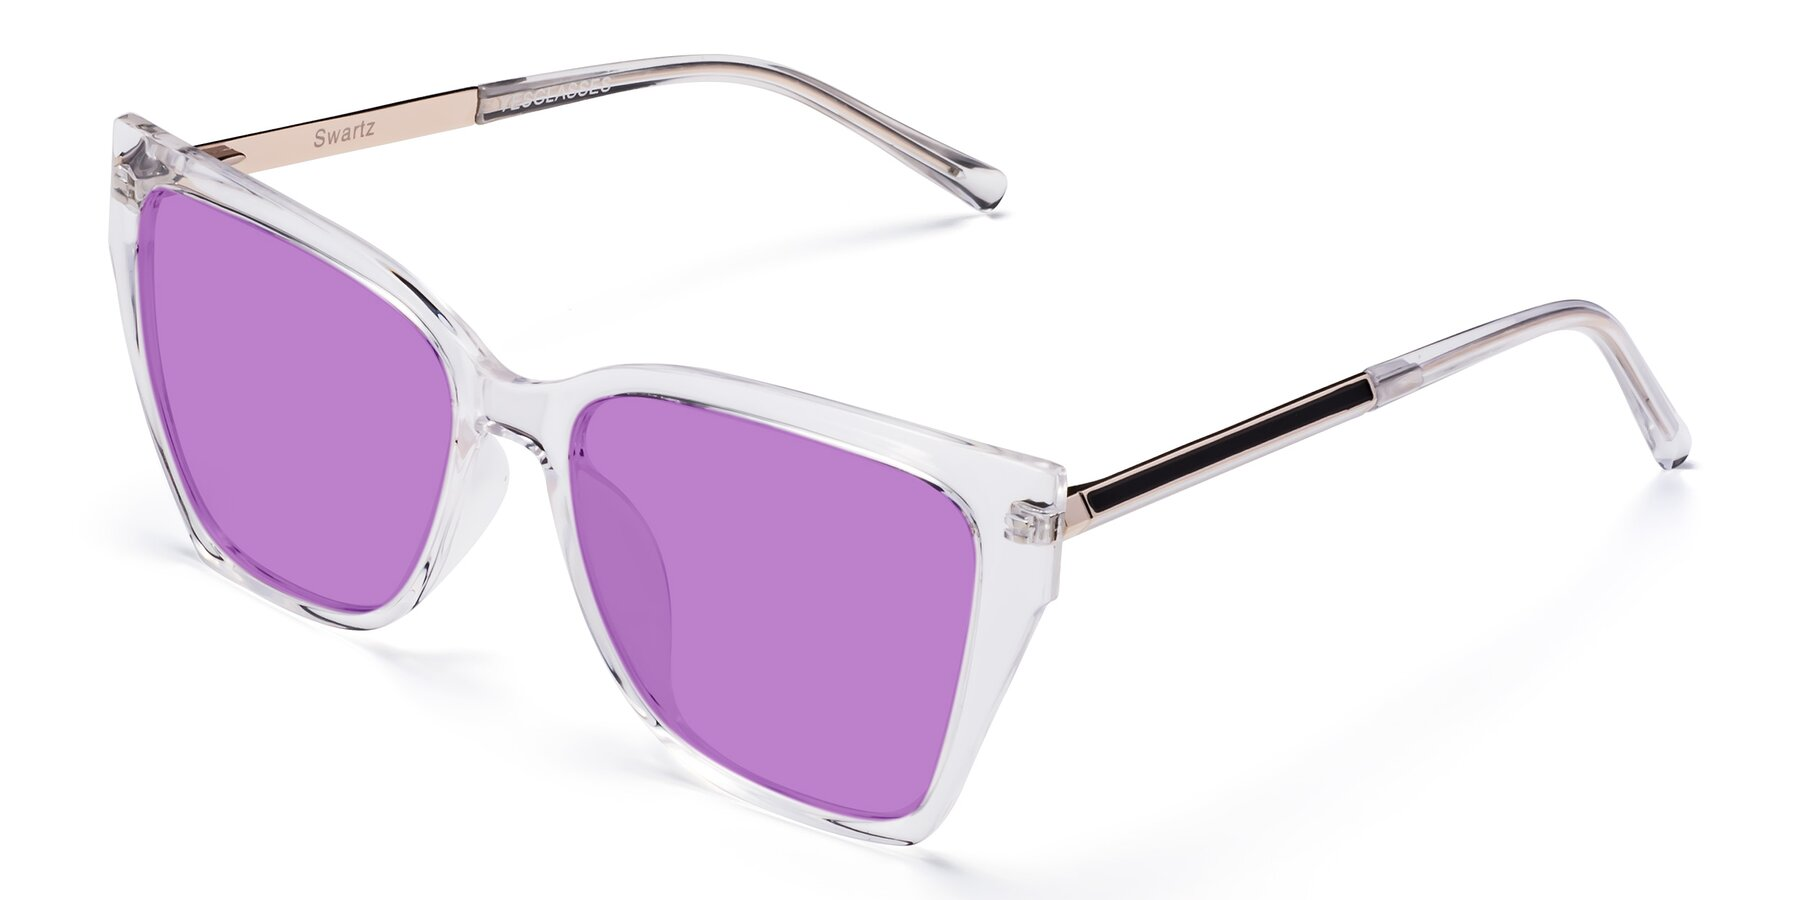 Angle of Swartz in Clear with Medium Purple Tinted Lenses